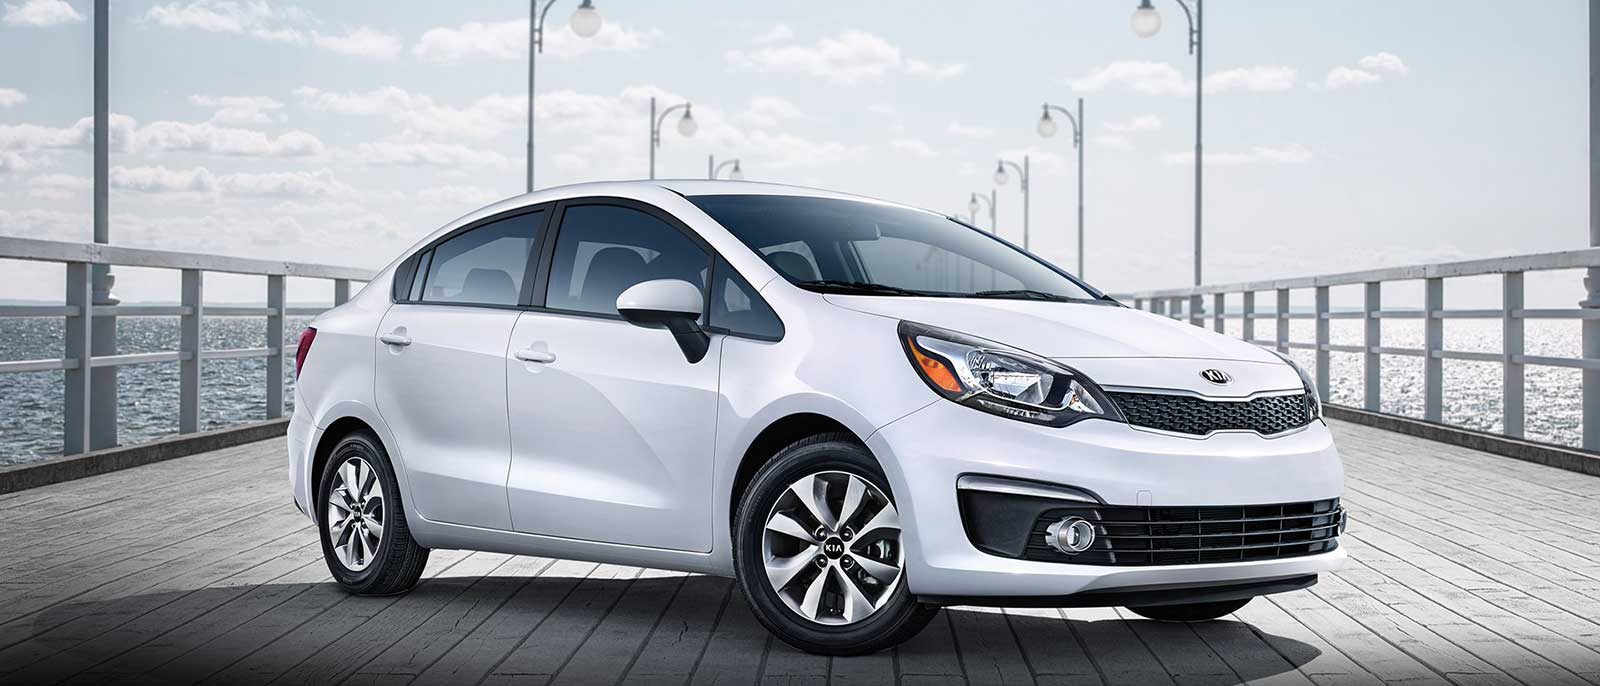 2017 kia rio specifications and info weston kia. Black Bedroom Furniture Sets. Home Design Ideas